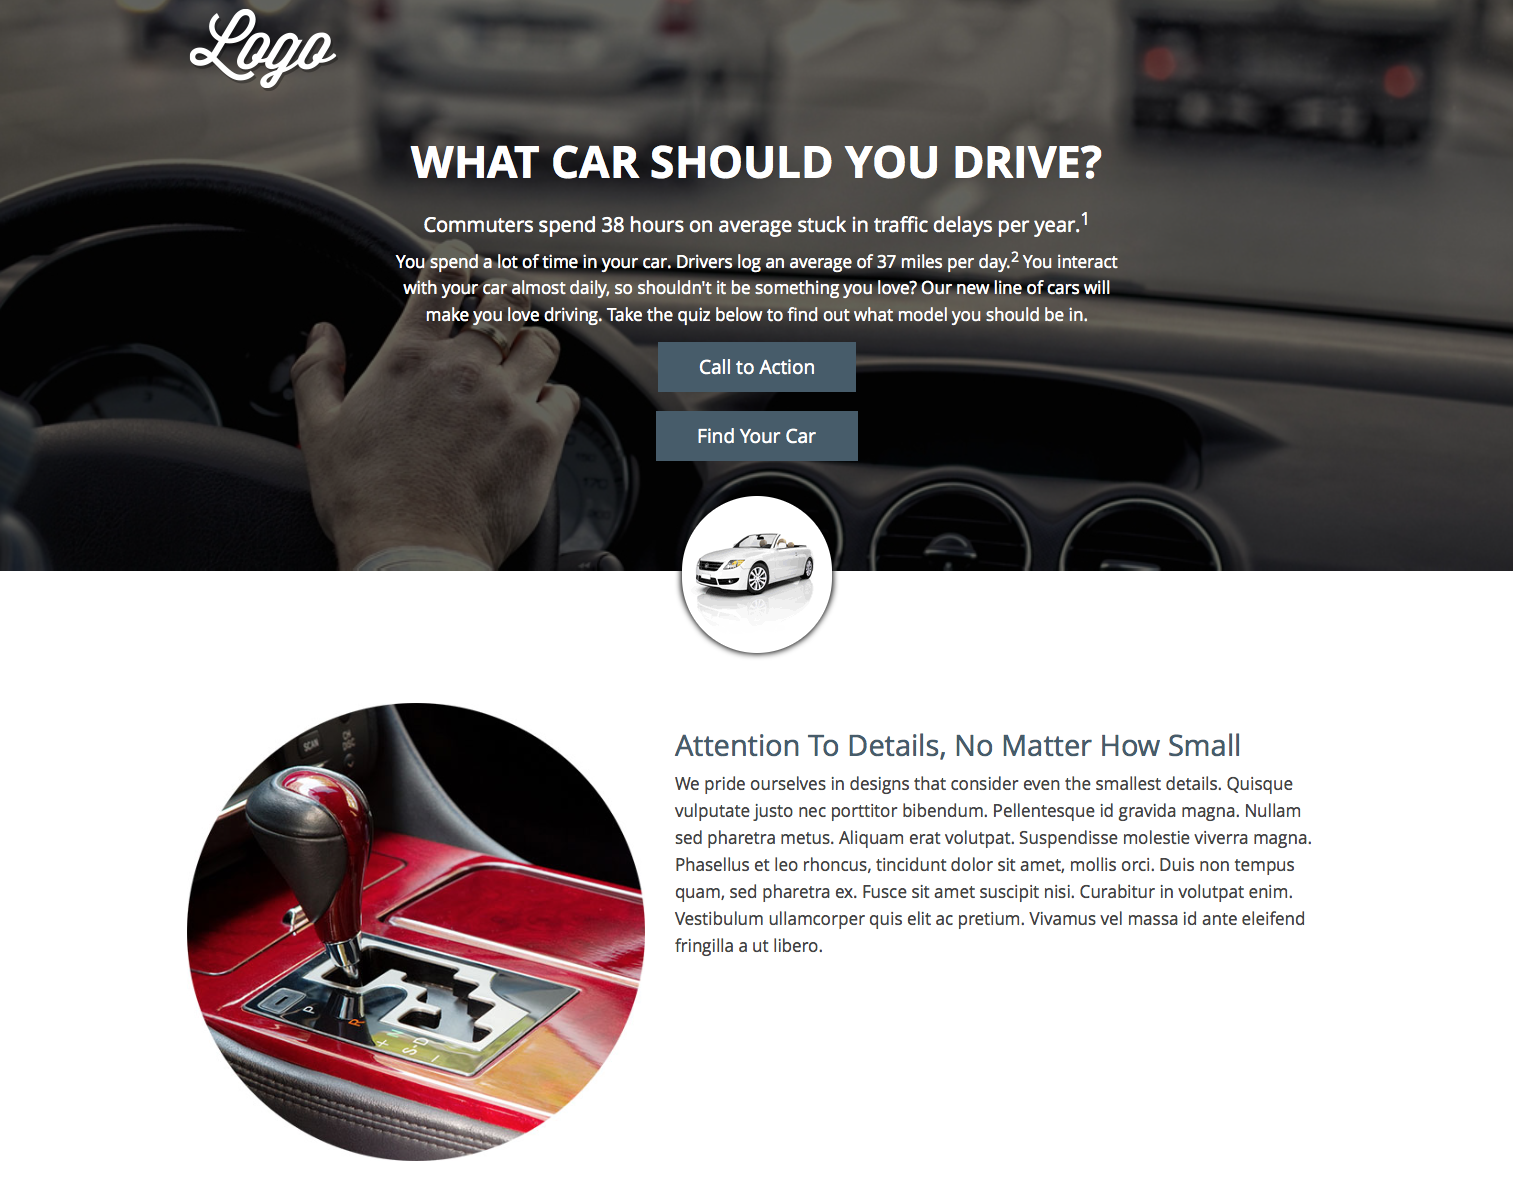 Visitors can engage in the lifestyle profiling questionnaire above the fold or build their brand interest consuming the content lower on the page.